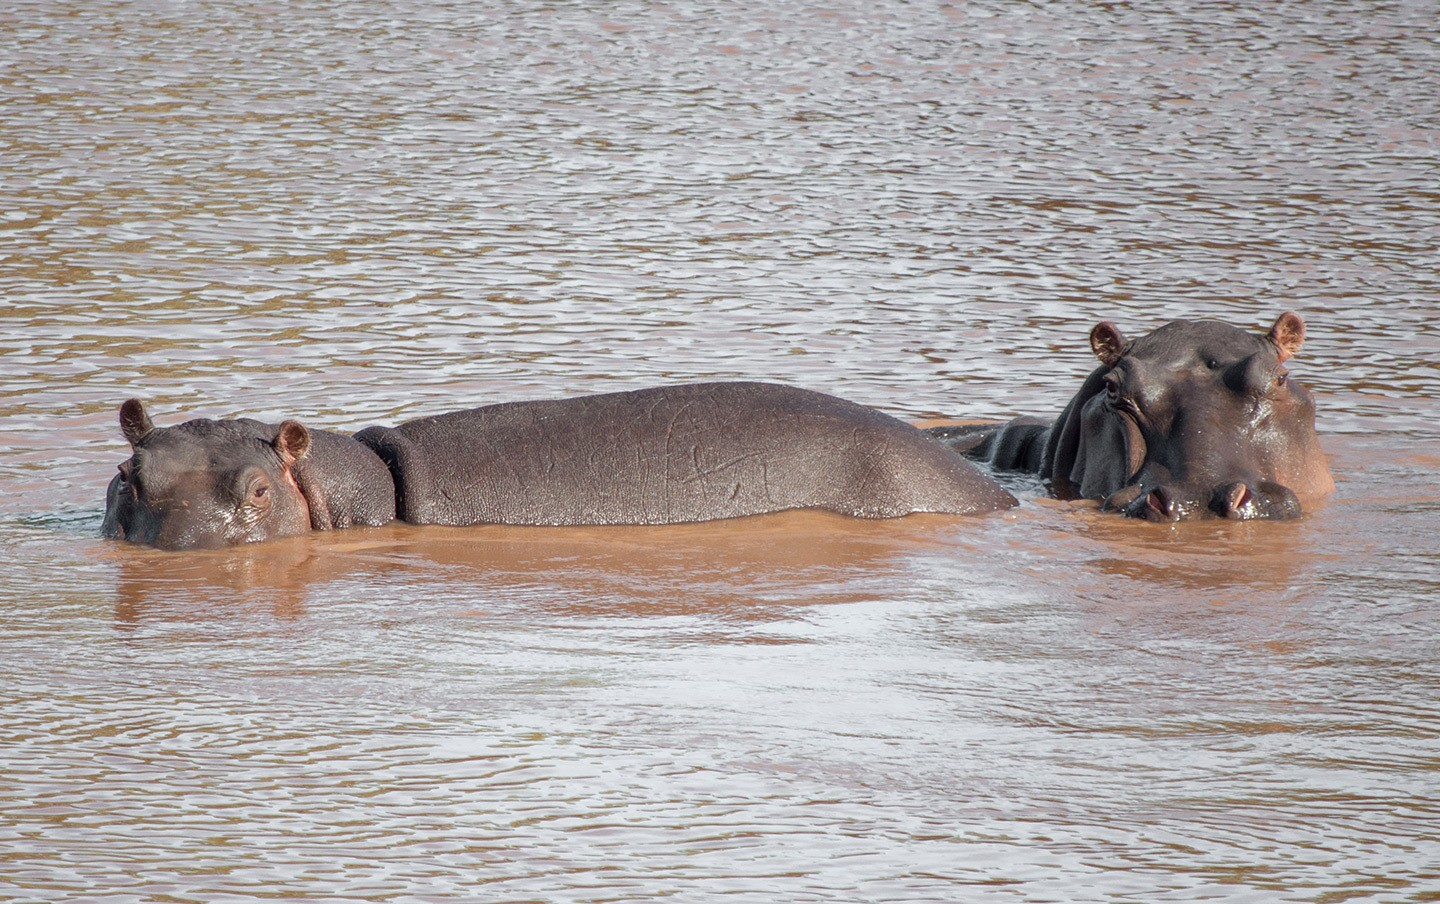 Hippos in Olifants River